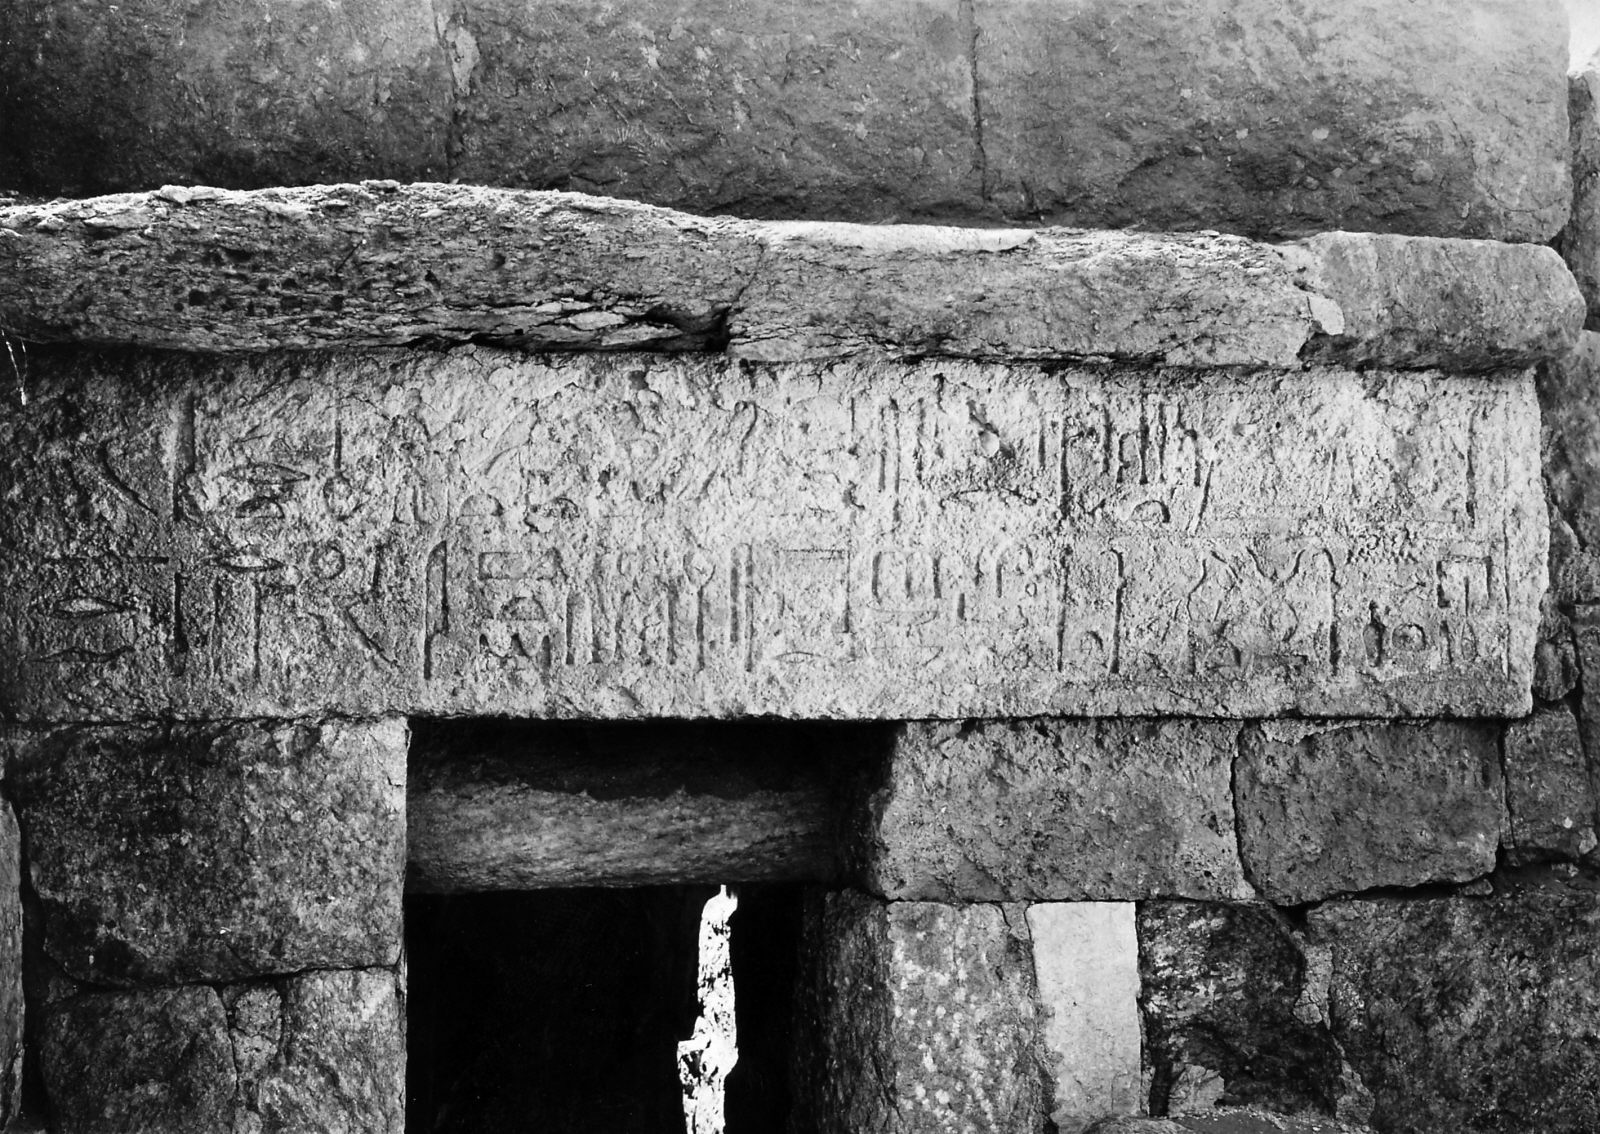 Mastaba of Sinefer, chapel entrance, lintel inscribed for Sinefer, looking south. Photo ID KHM_AEOS_II_2837, photo and description courtesy of the Giza Archives maintained by Harvard University and the Museum of Fine Arts Boston, online at Digital Giza.